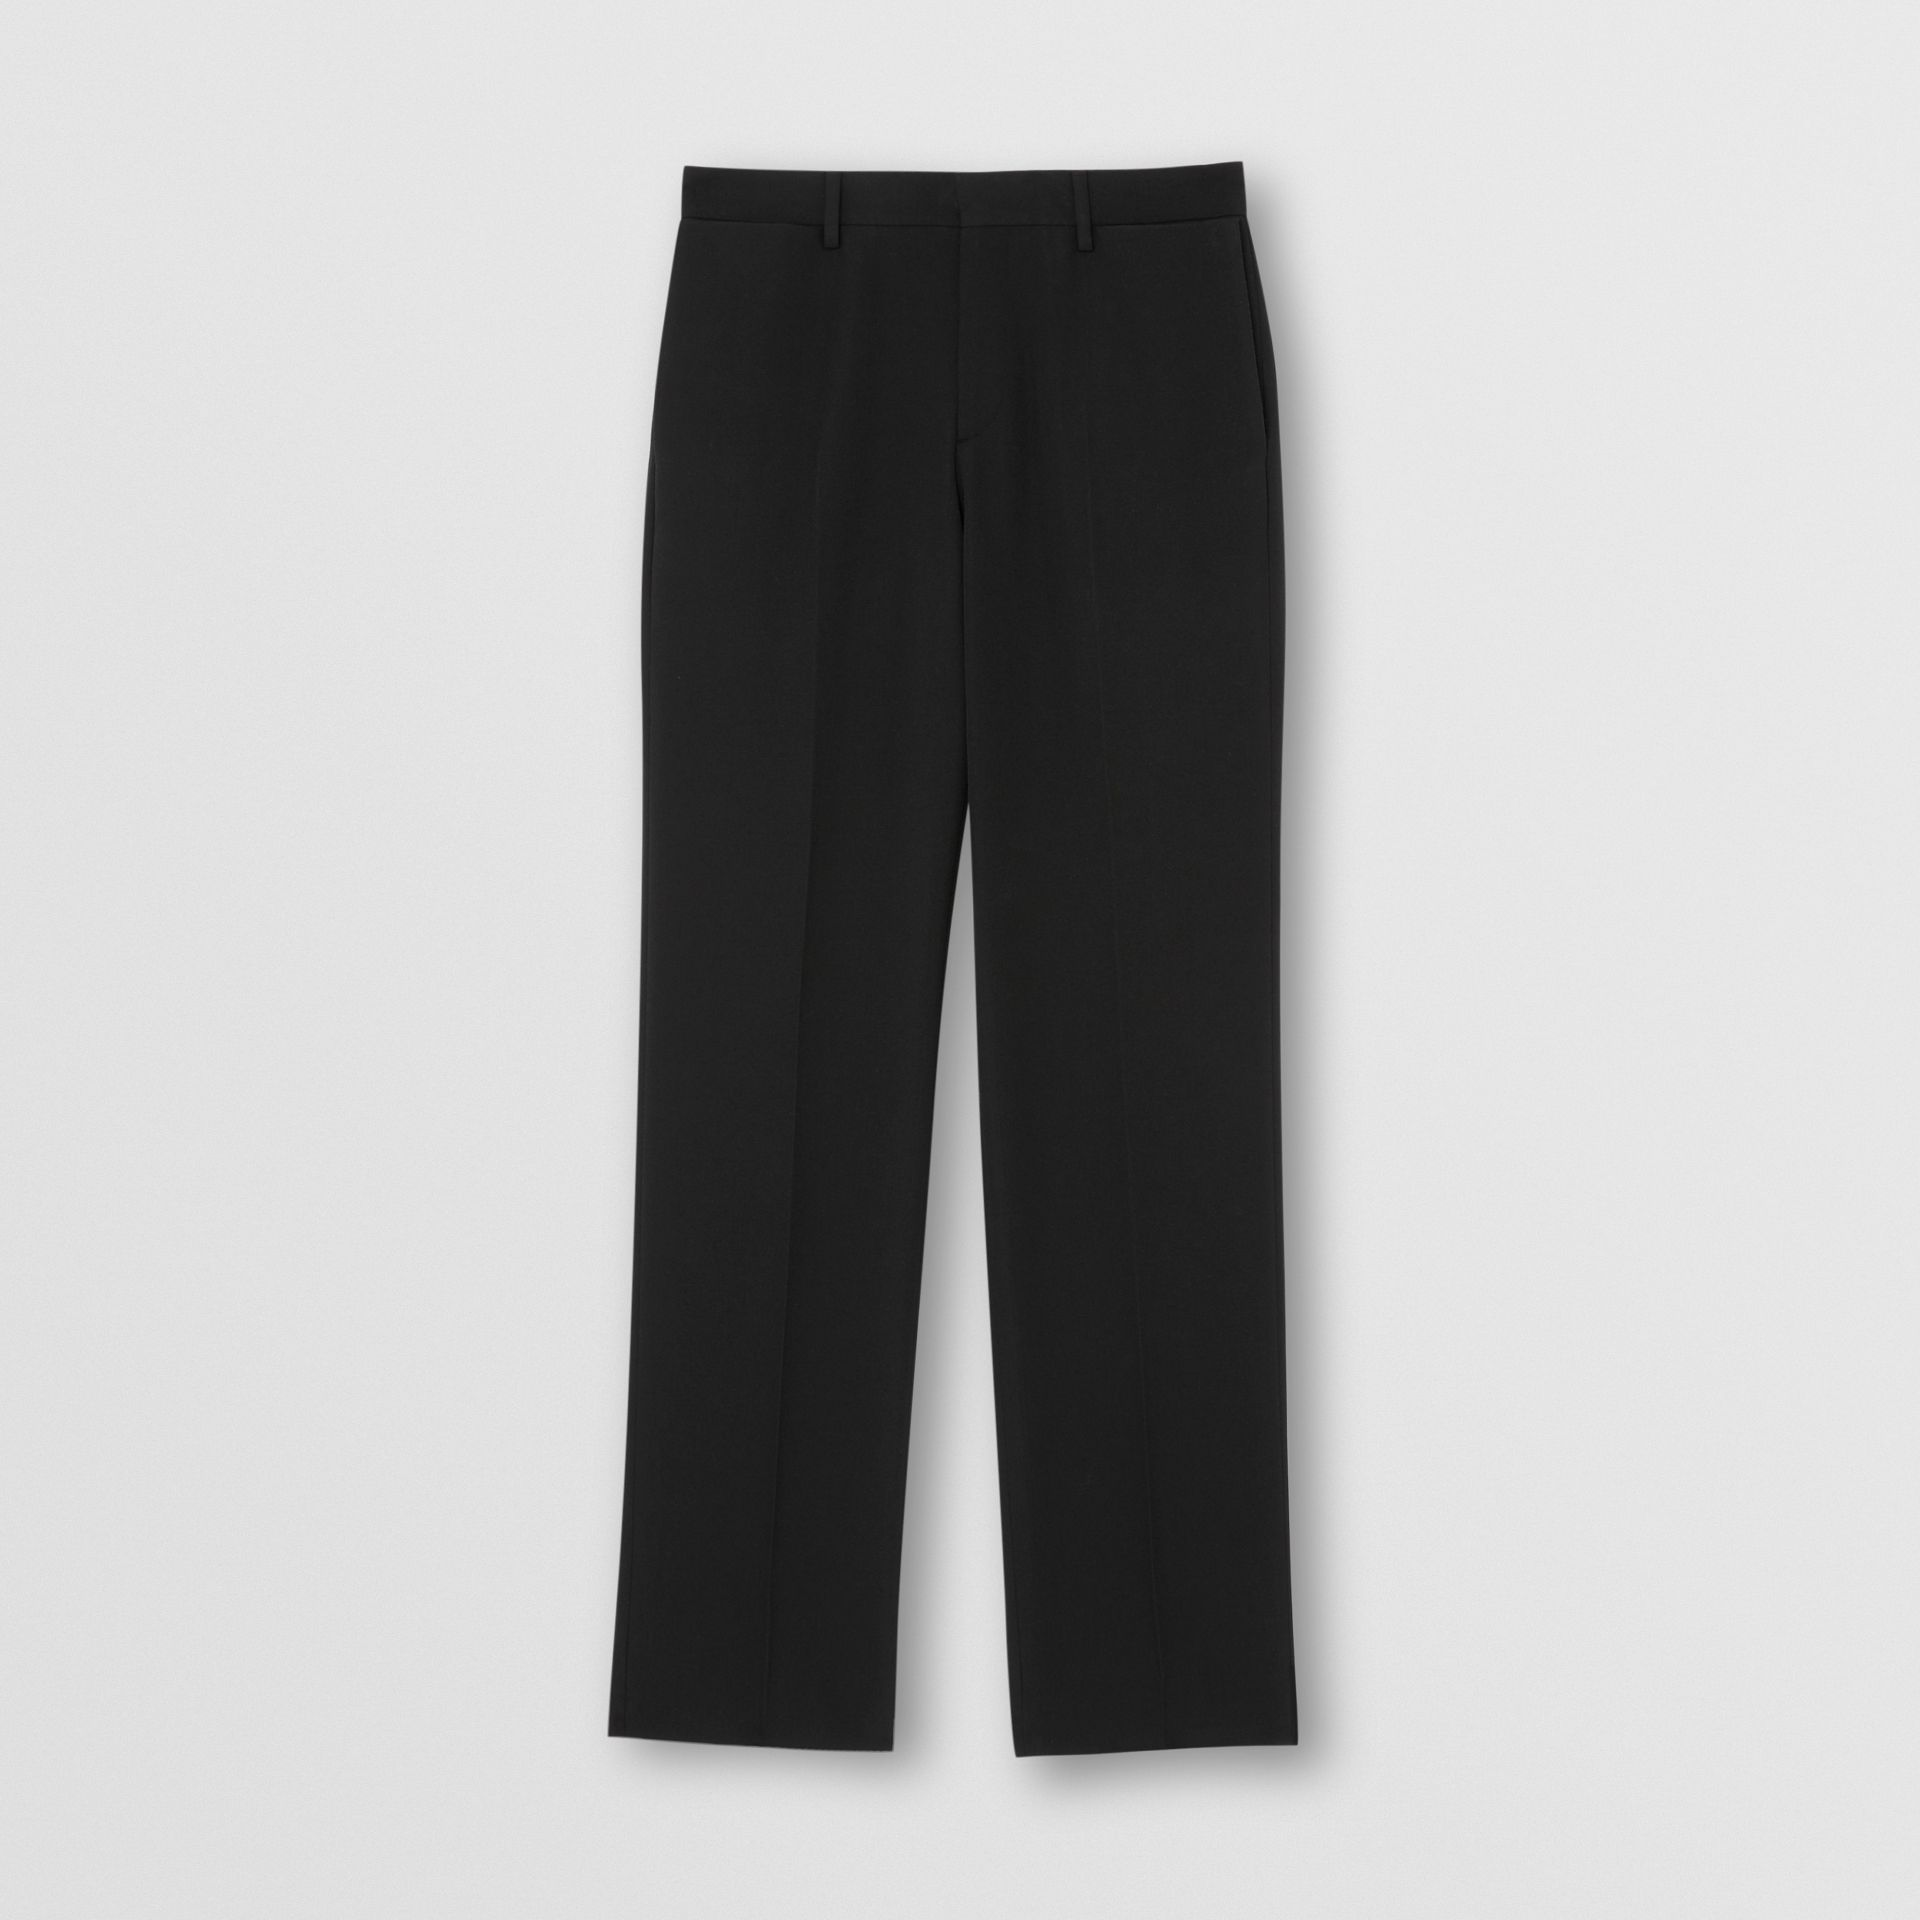 English Fit Pocket Detail Wool Tailored Trousers in Black | Burberry - gallery image 3